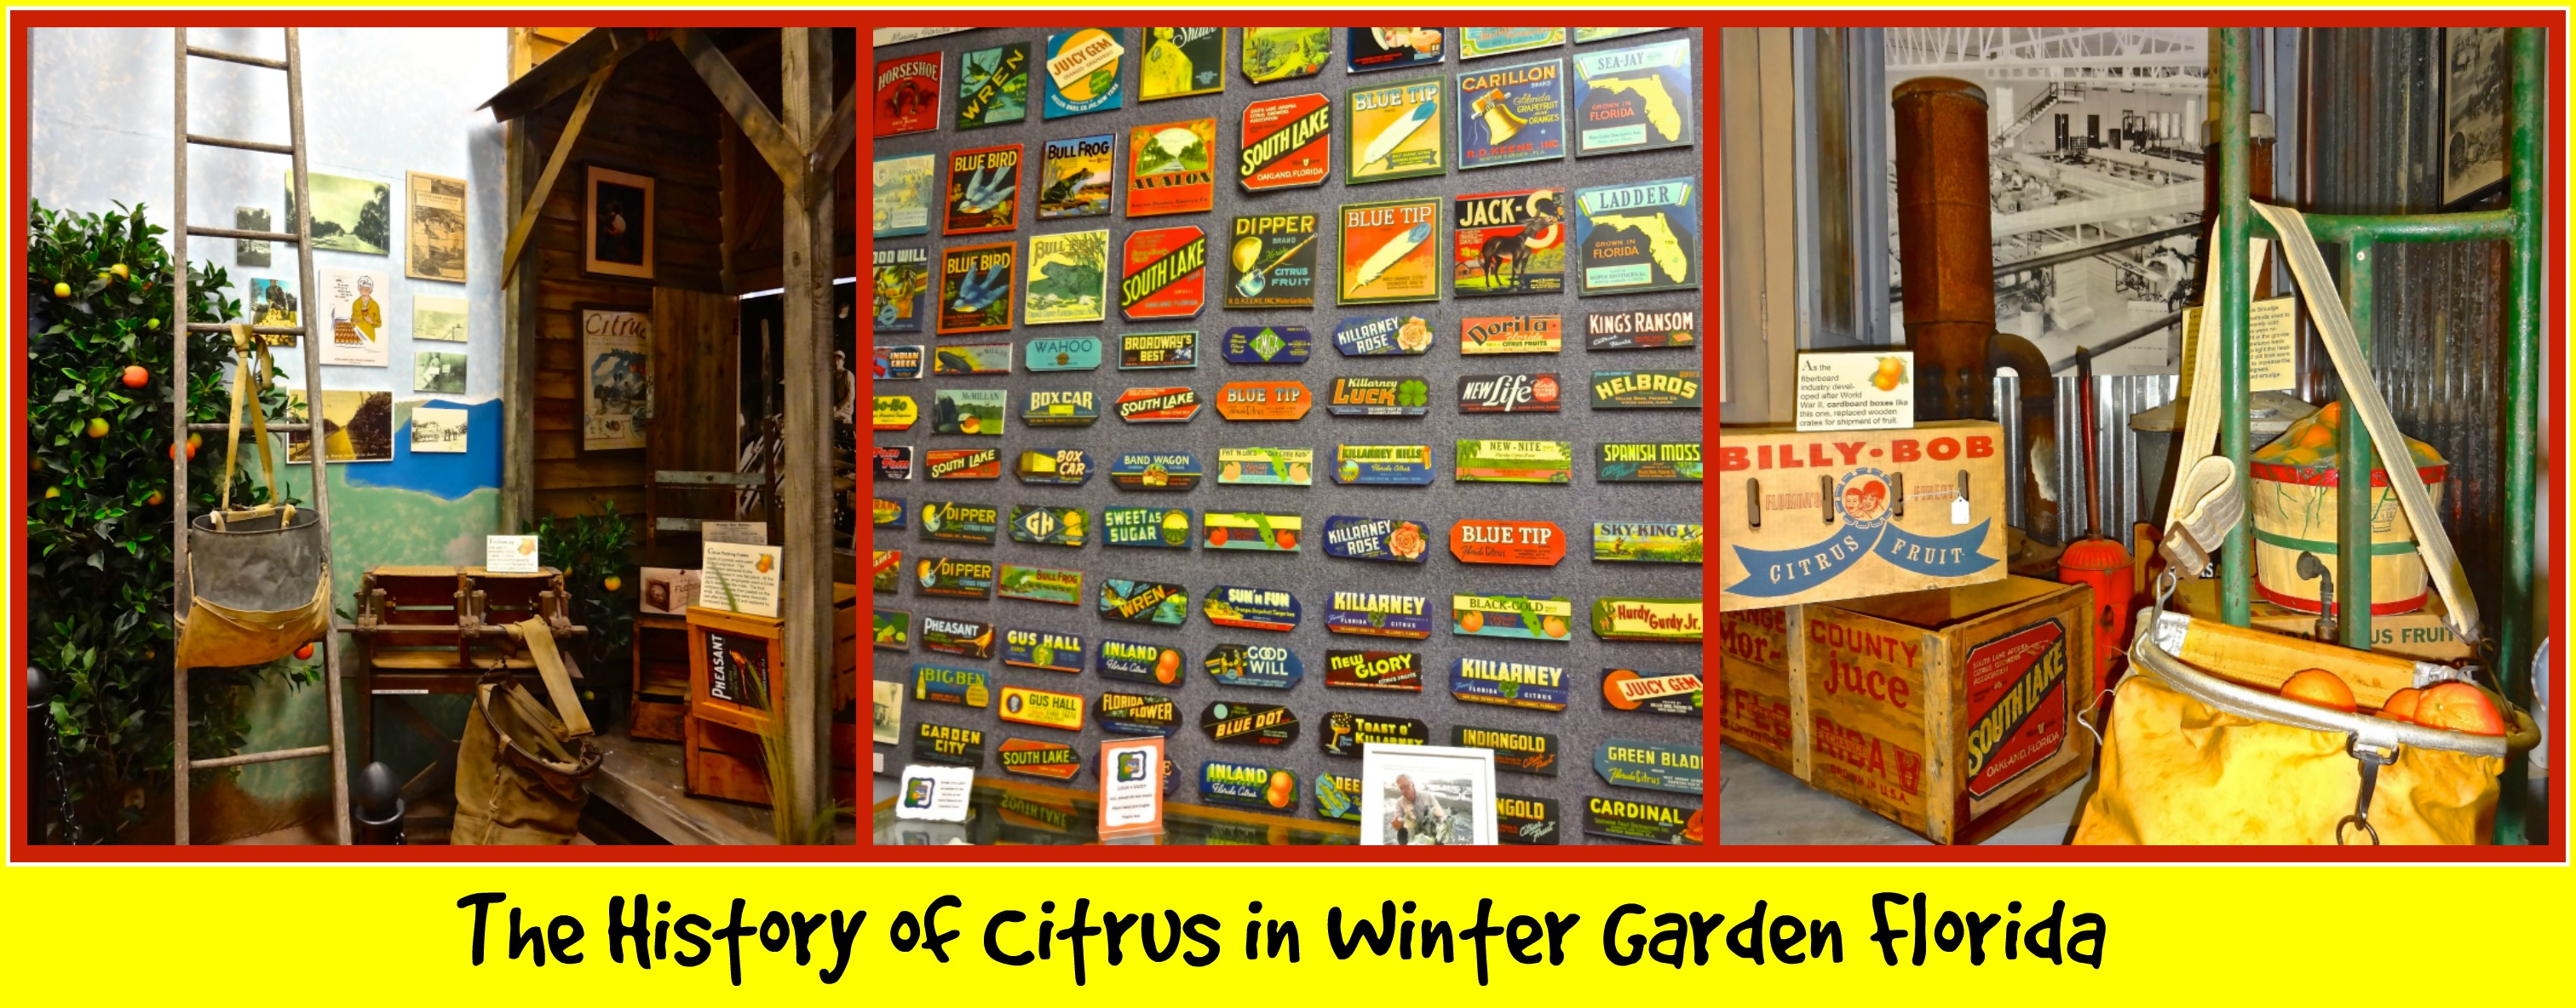 The History Of Citrus In Winter Garden Florida